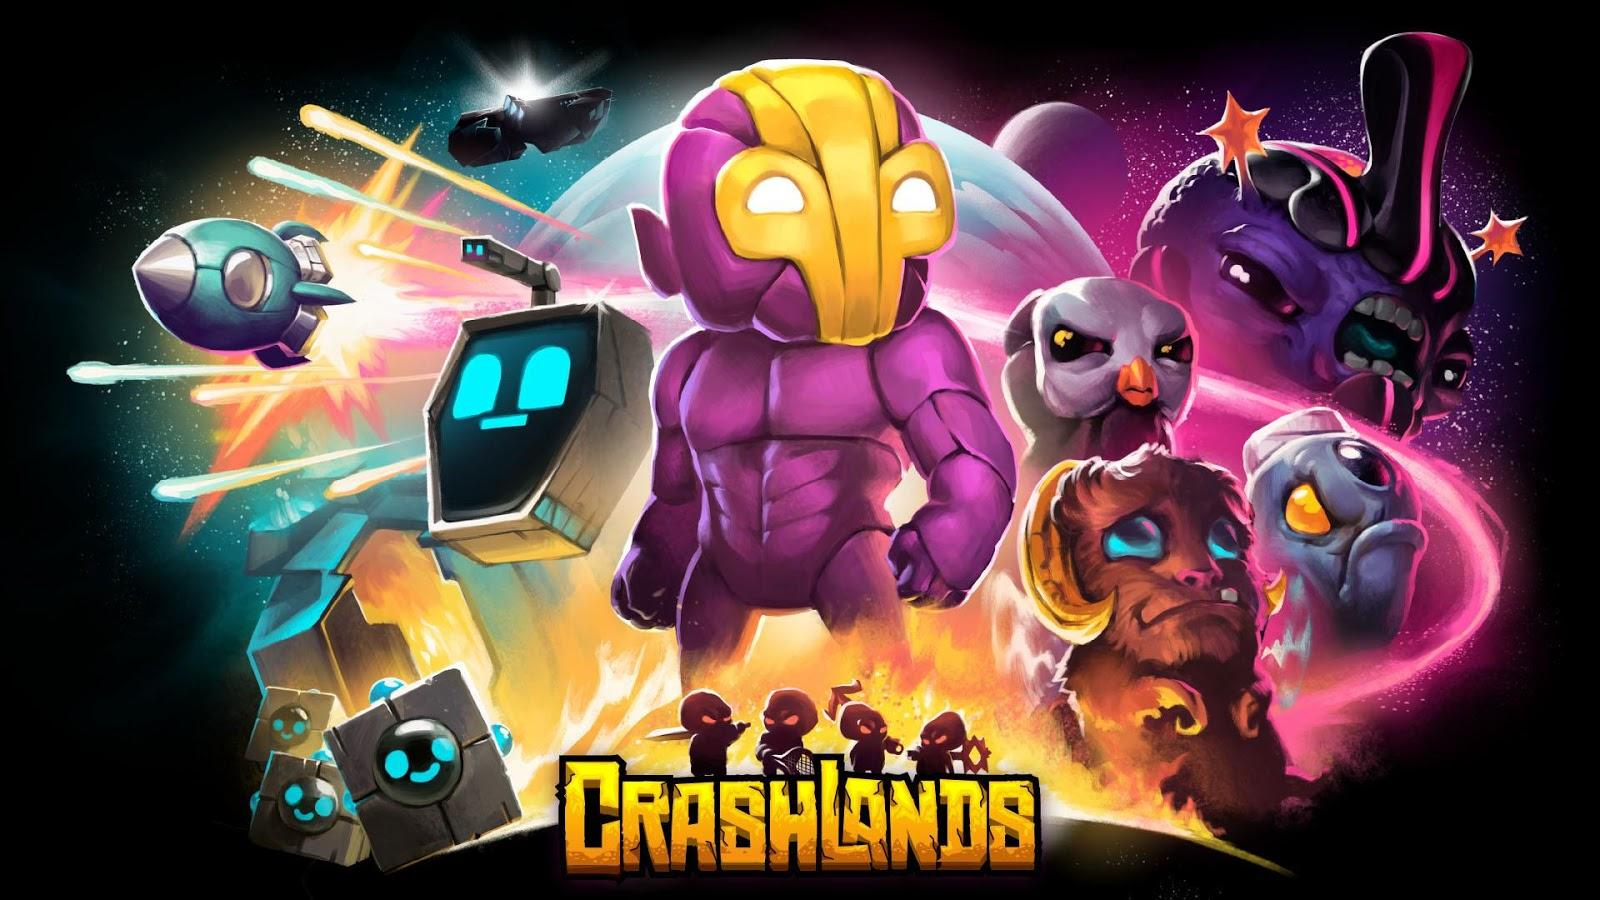 В Epic Games Store началась раздача Amnesia: The Dark Descent и Crashlands